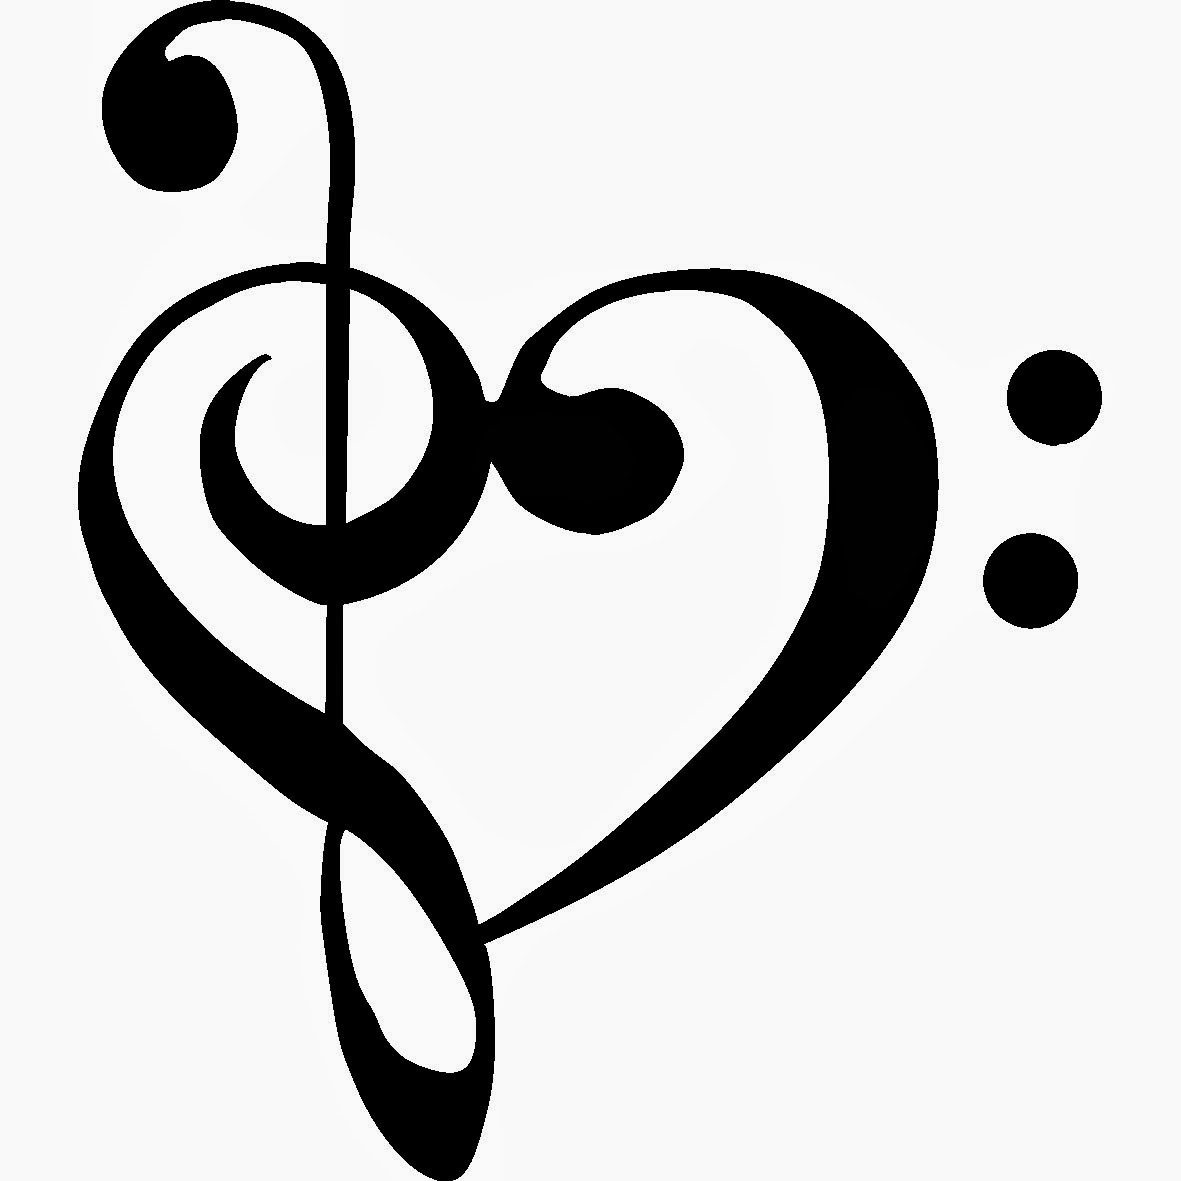 1181x1181 Music Notes Clipart Easy